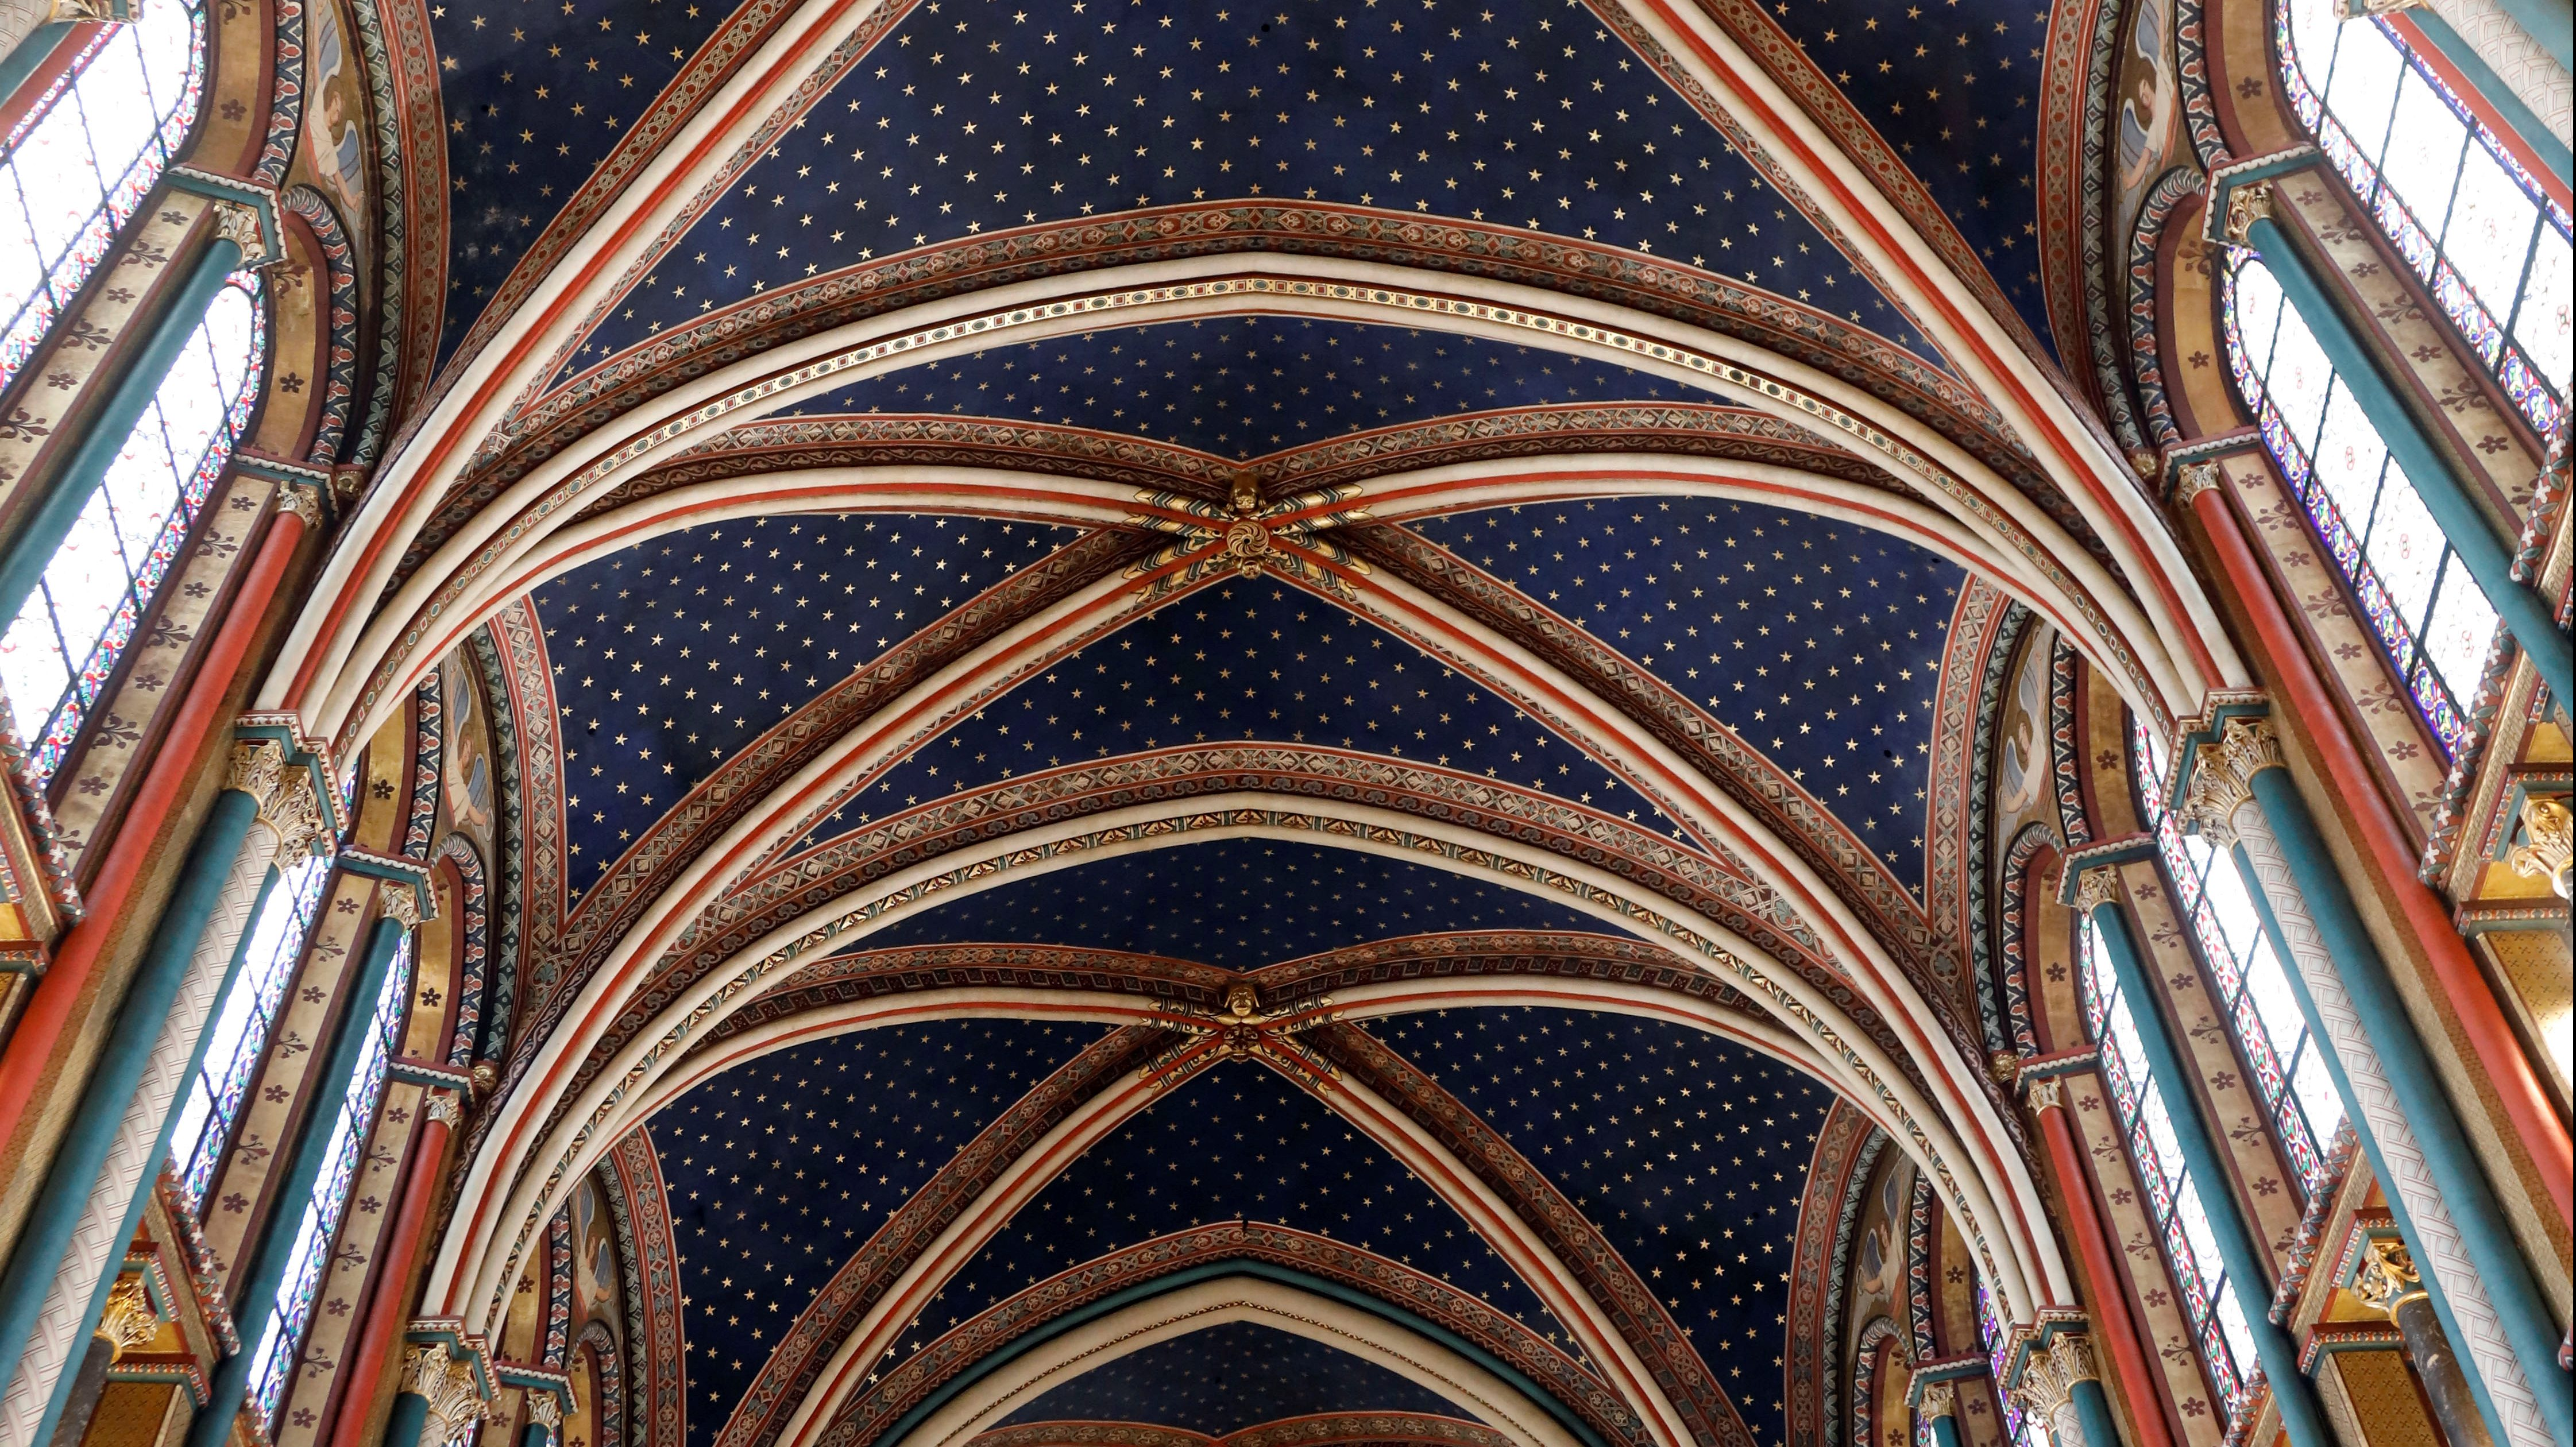 The ceiling of a church.